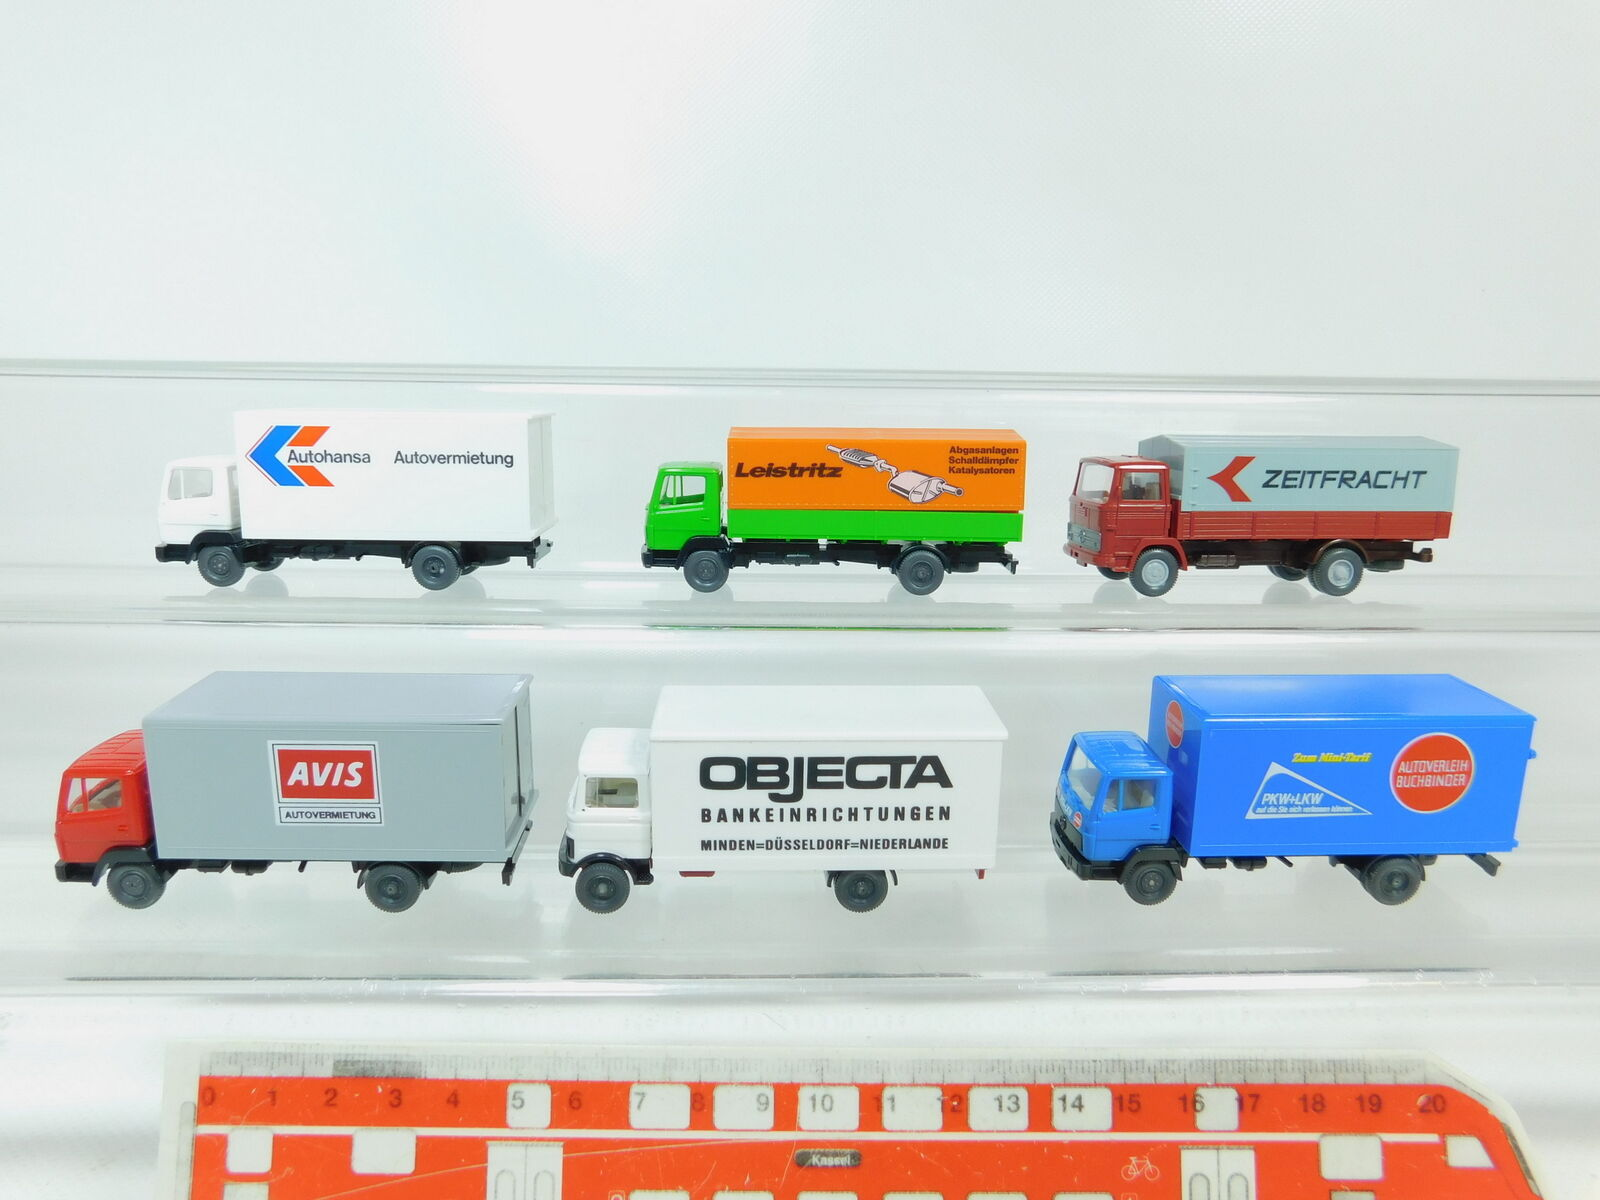 BN66-0,5 BN66-0,5 BN66-0,5 x Wiking H0   1 87 Car MB   Avis +Leistritz +Objecta +Book Binder c92560